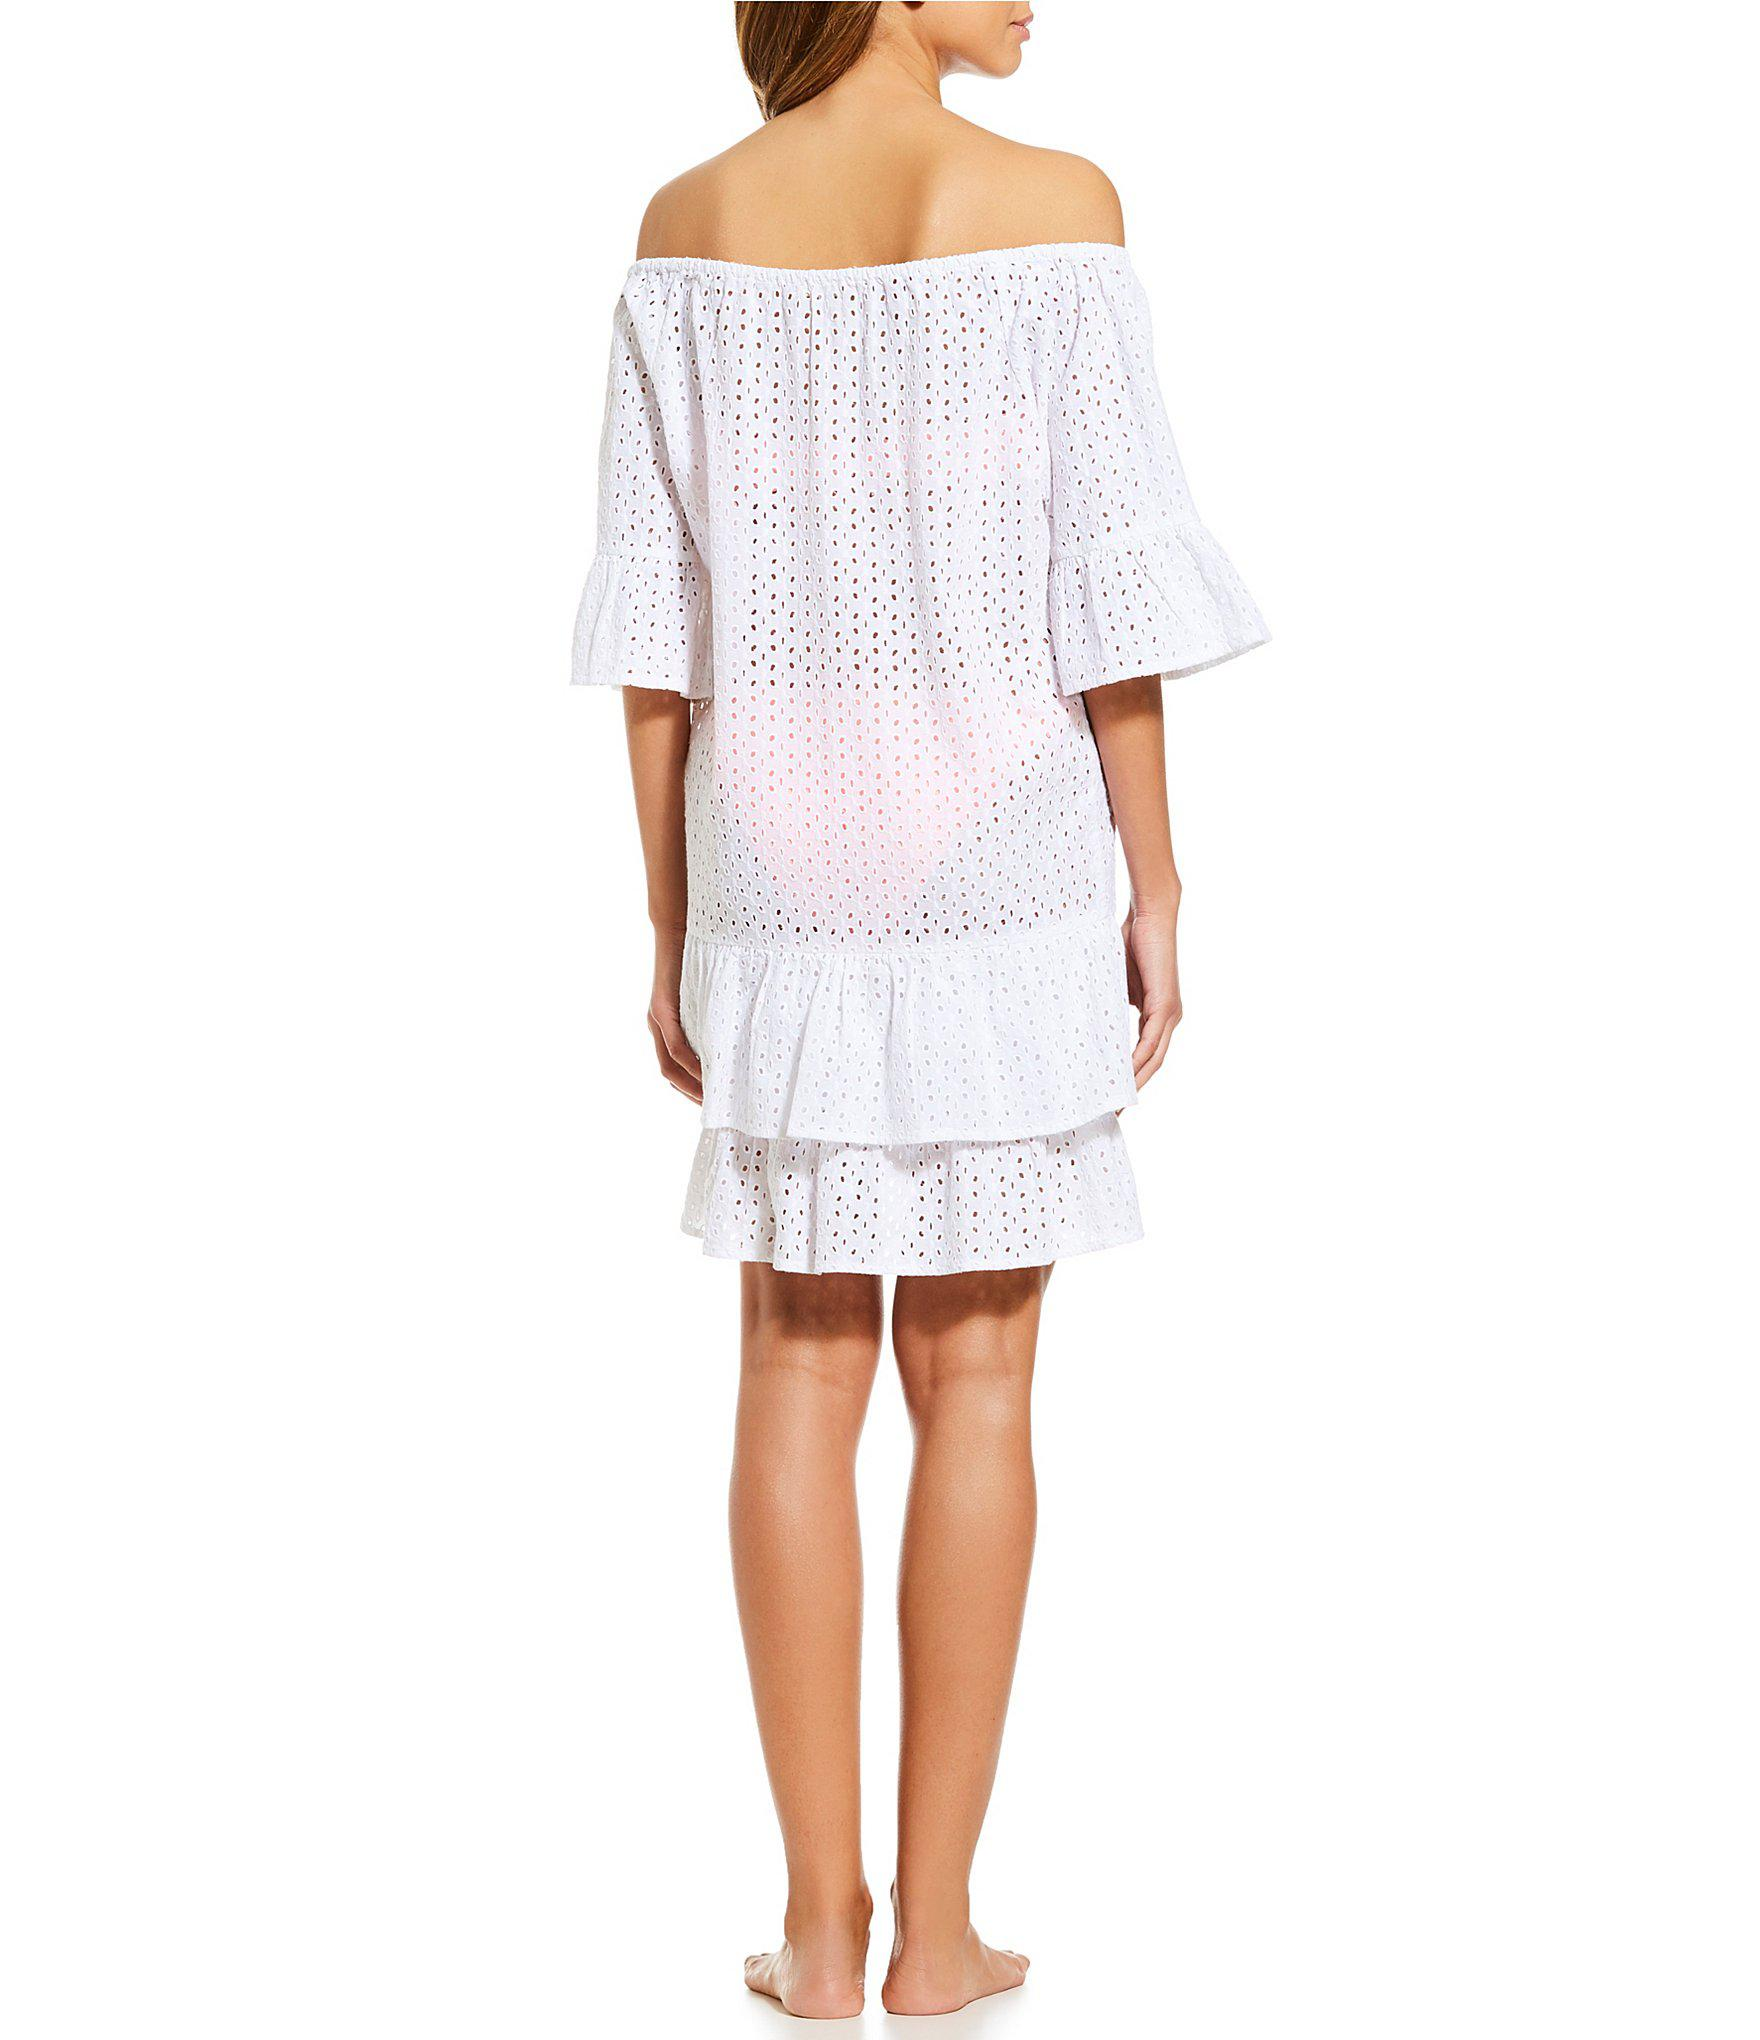 d1284f24f7 Gianni Bini Eyelet Off-the-shoulder Dress Swimsuit Cover-up in White ...